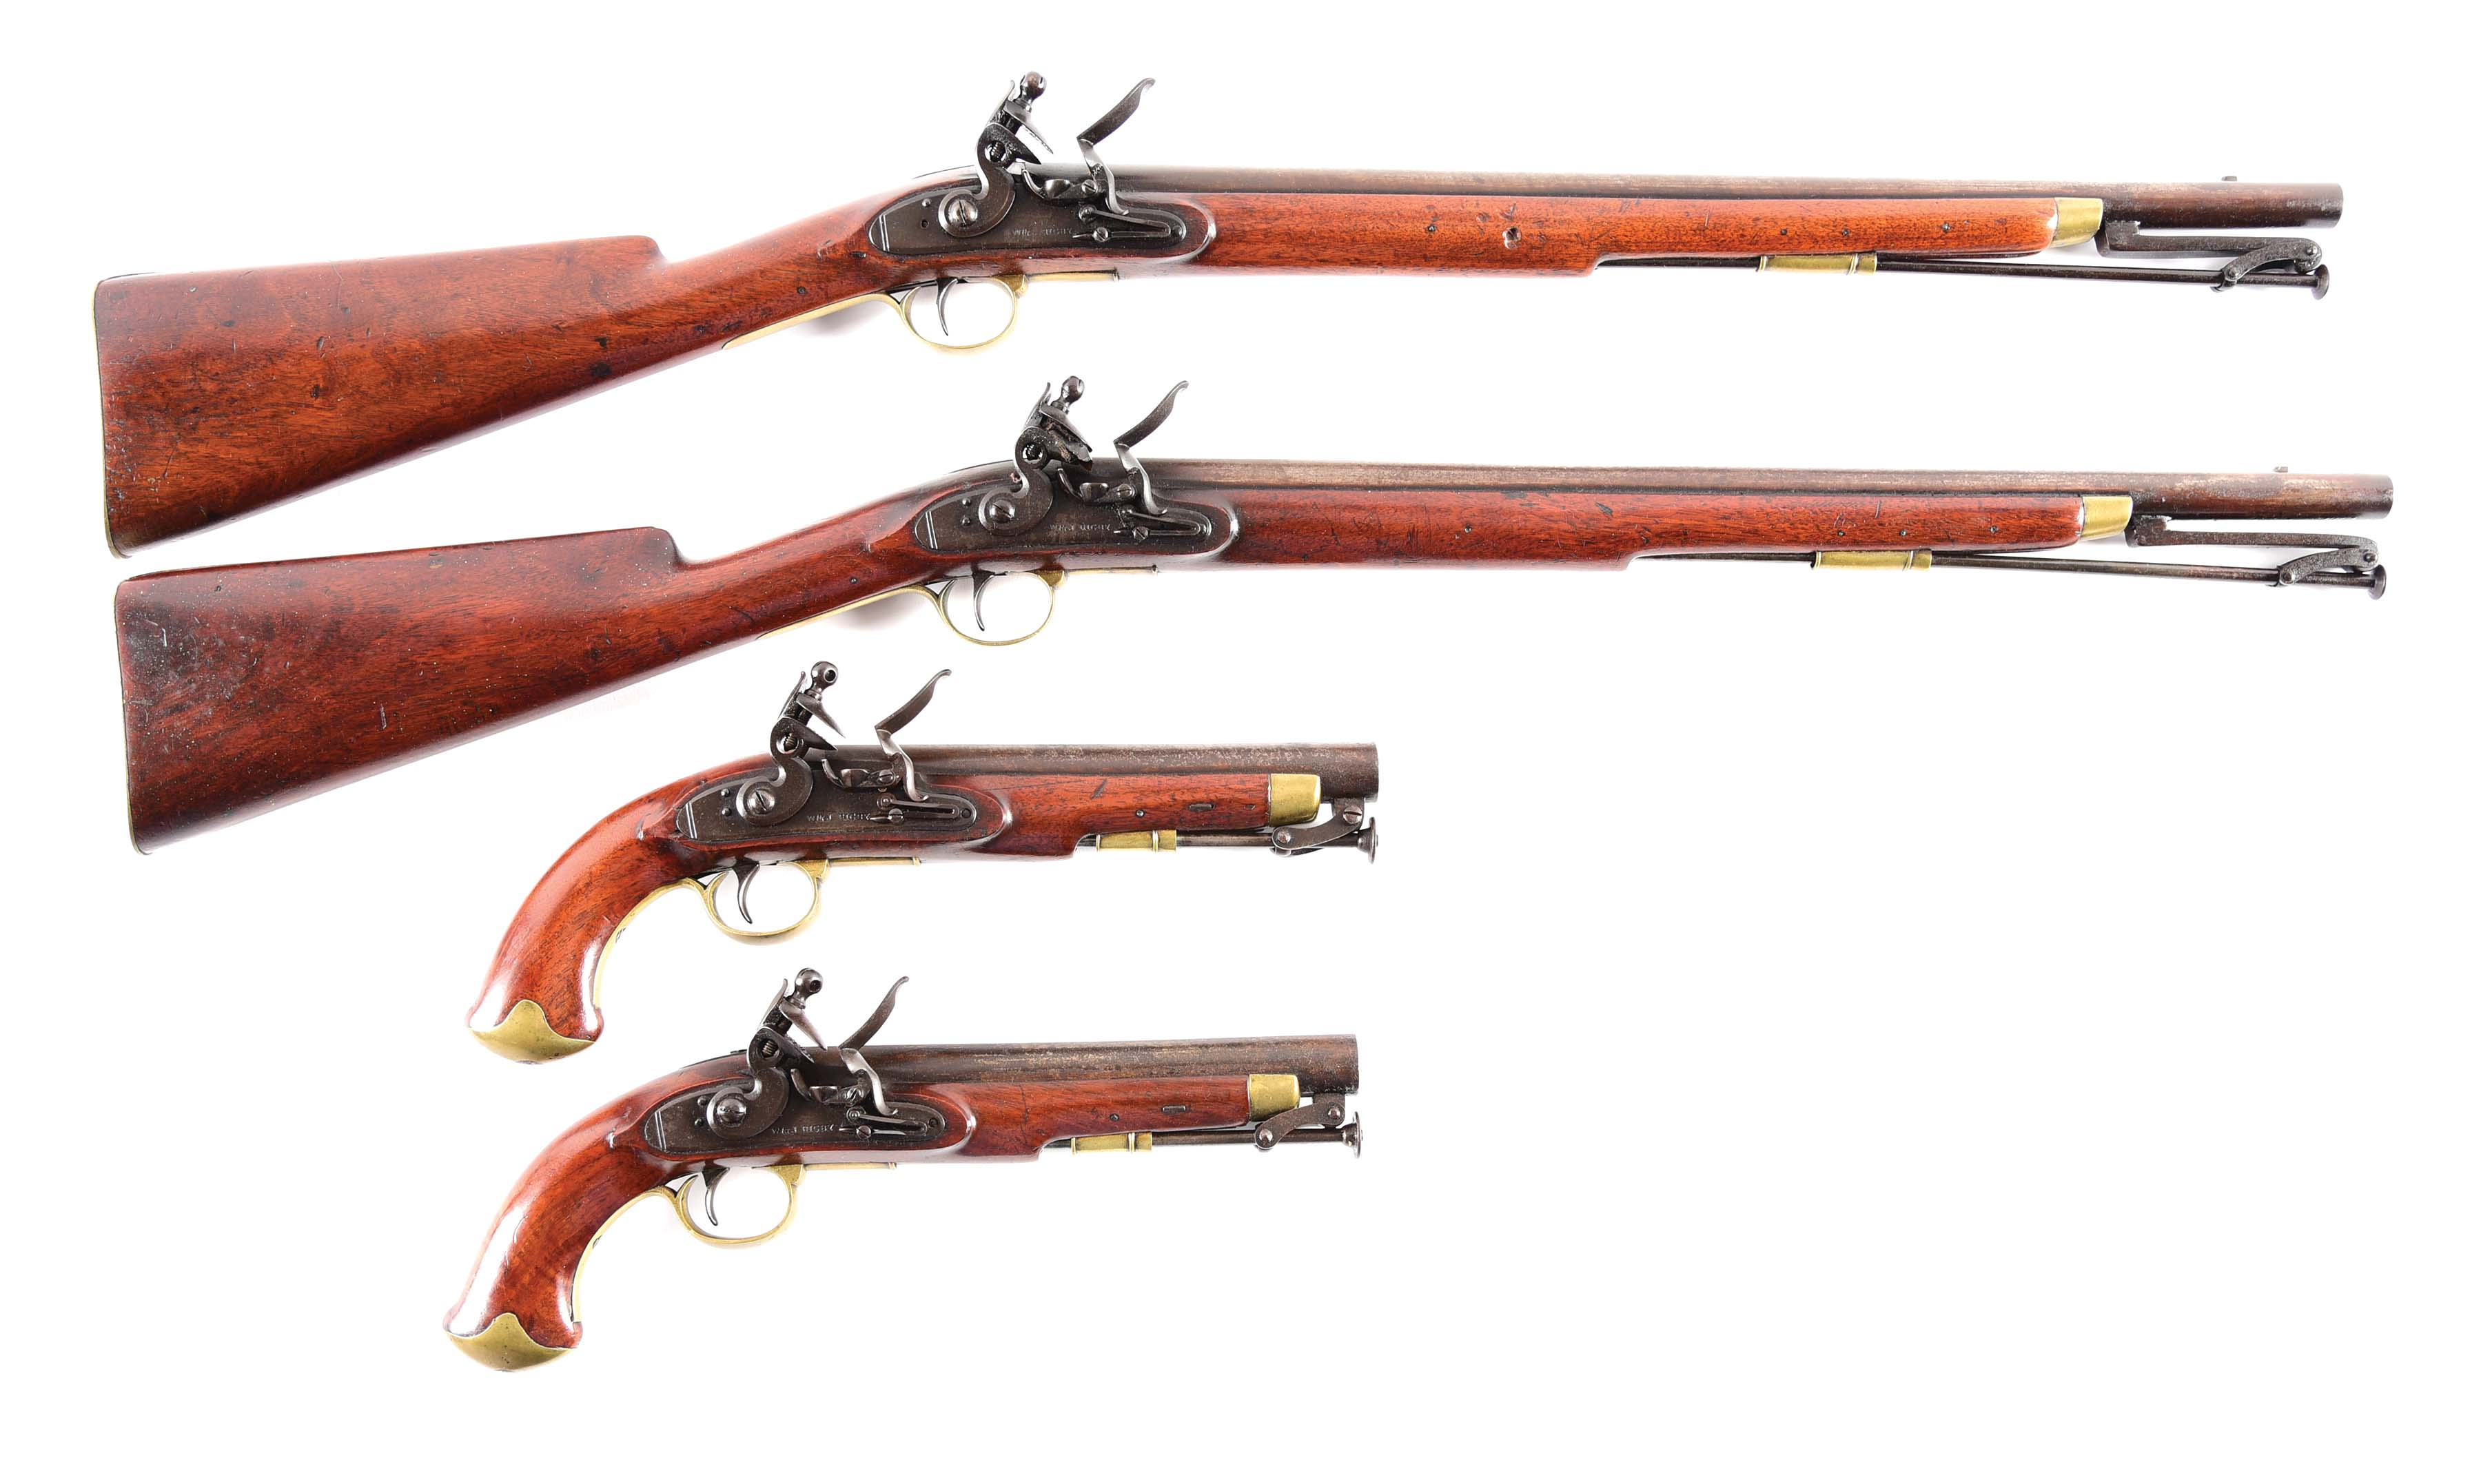 Early Arms & Militaria: Age of Exploration, Empire & Revolution